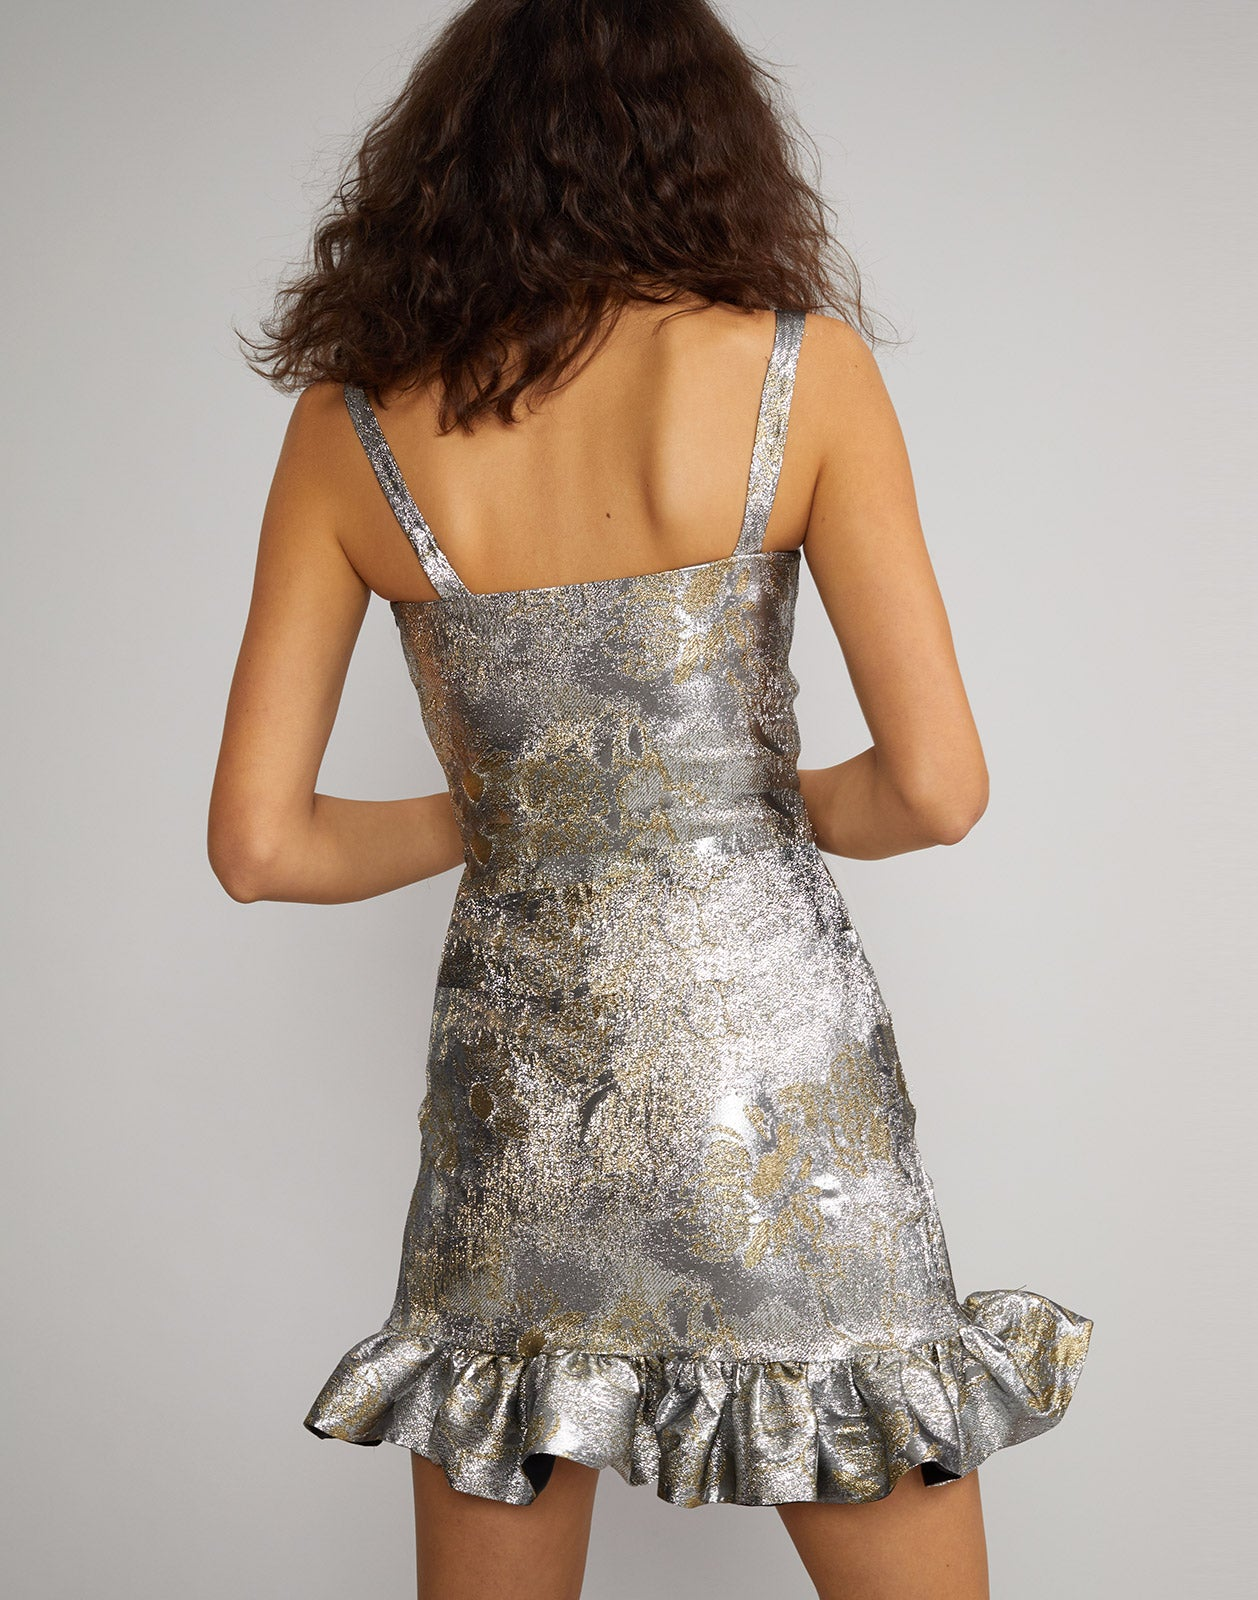 Back view of model wearing Gold Coast Metallic Brocade mini dress.